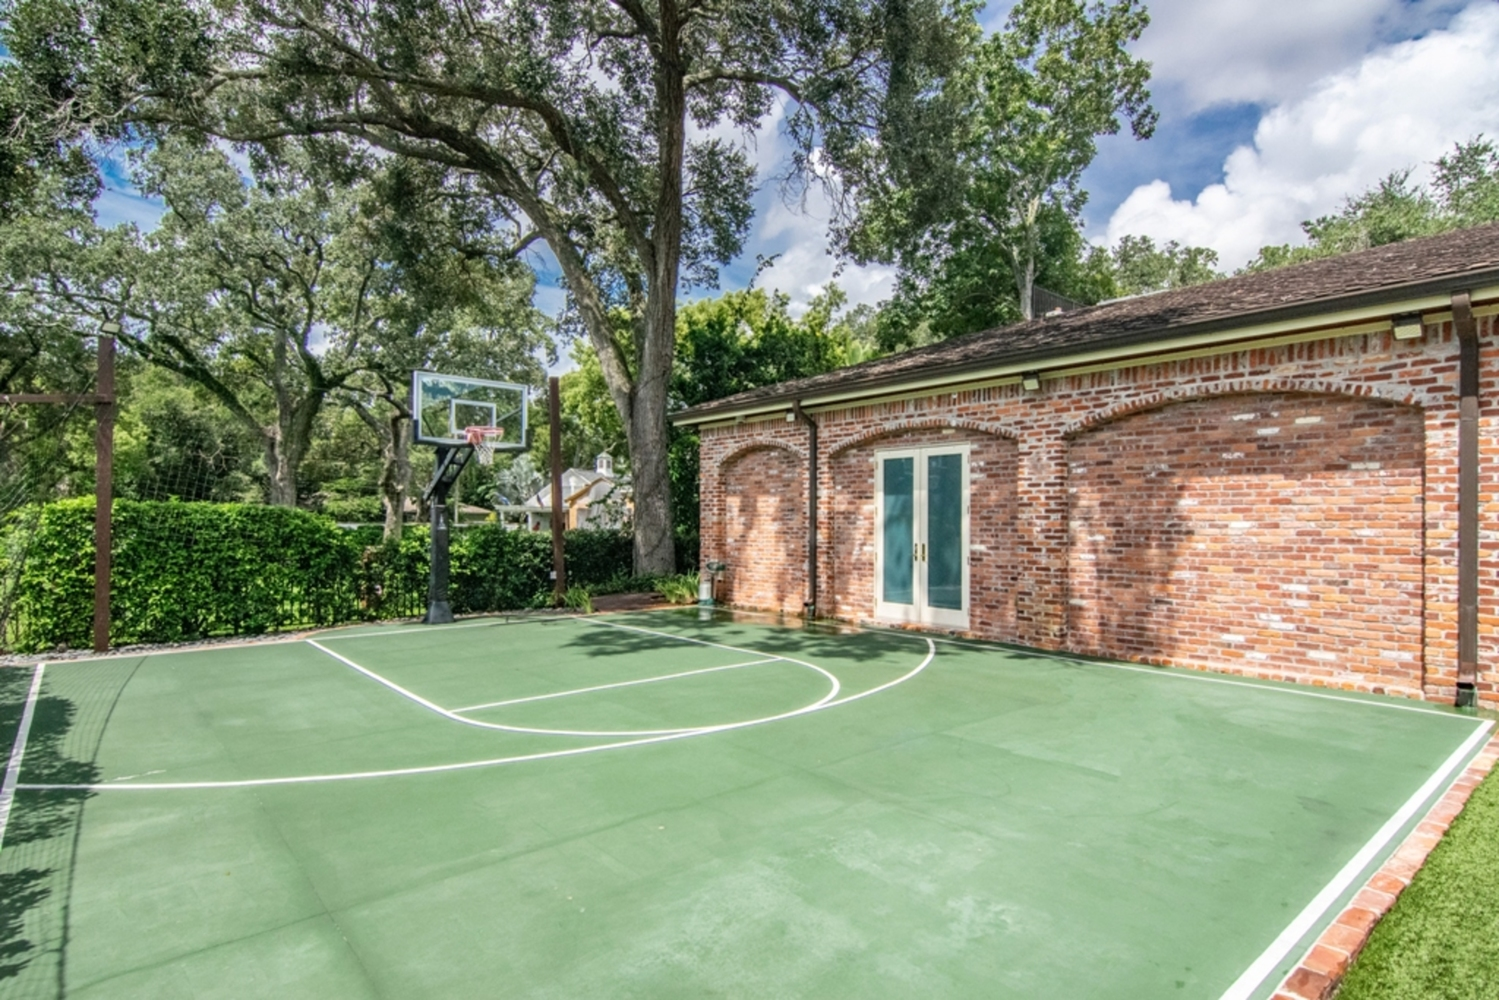 134 basketball court